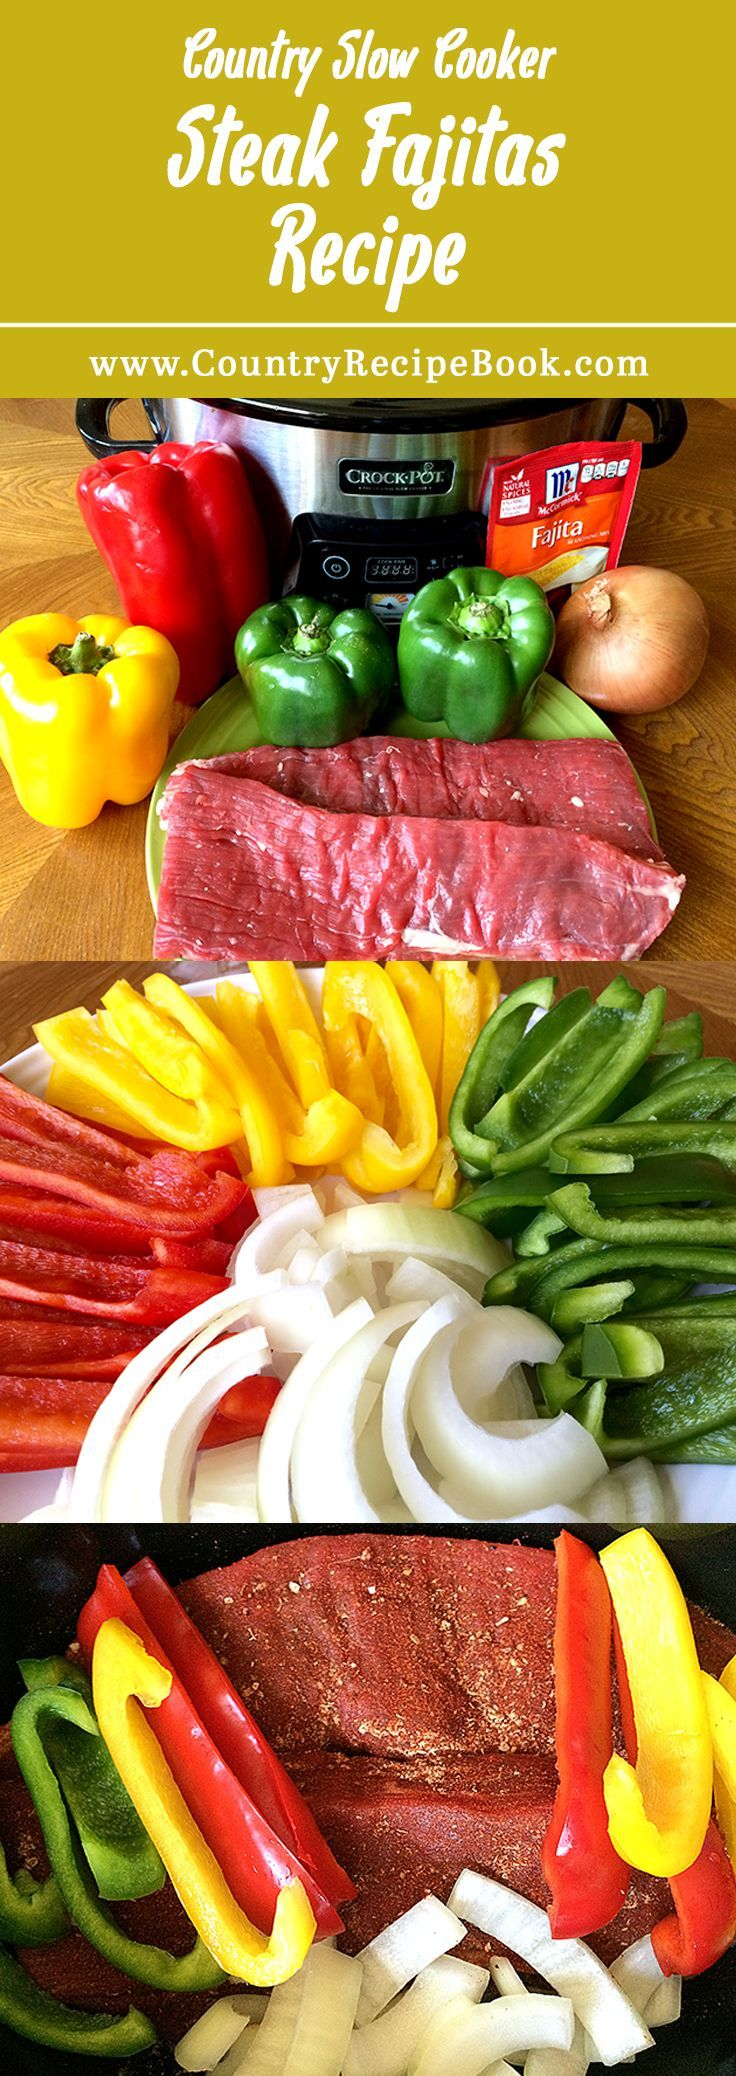 Easy fajita recipes steak